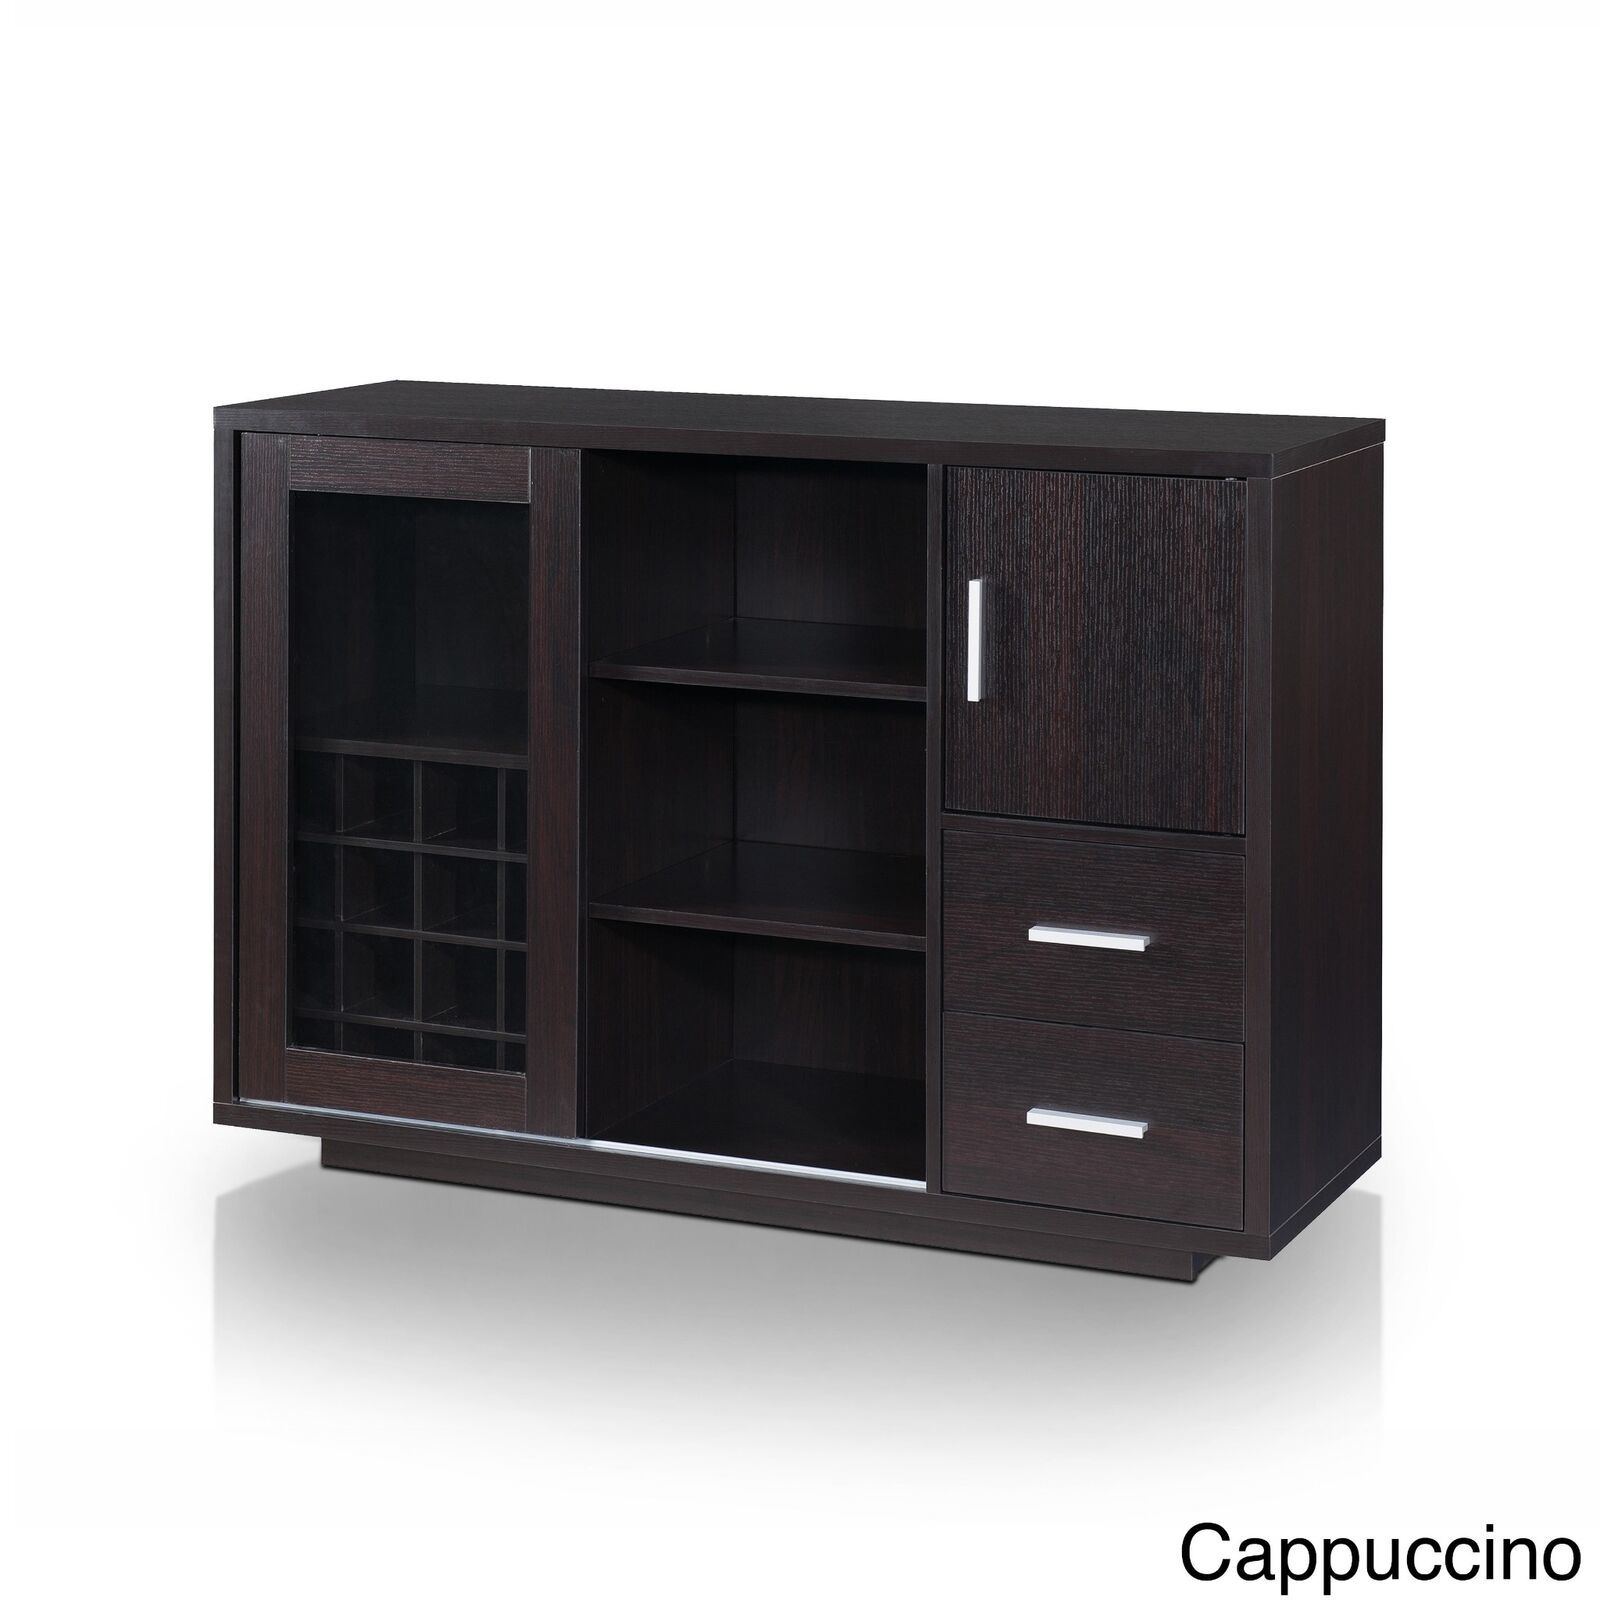 Espresso Brown Dry Bar Storage Holds 16 Bottles Wine Rack Liquor Cabinet Buffet image 5